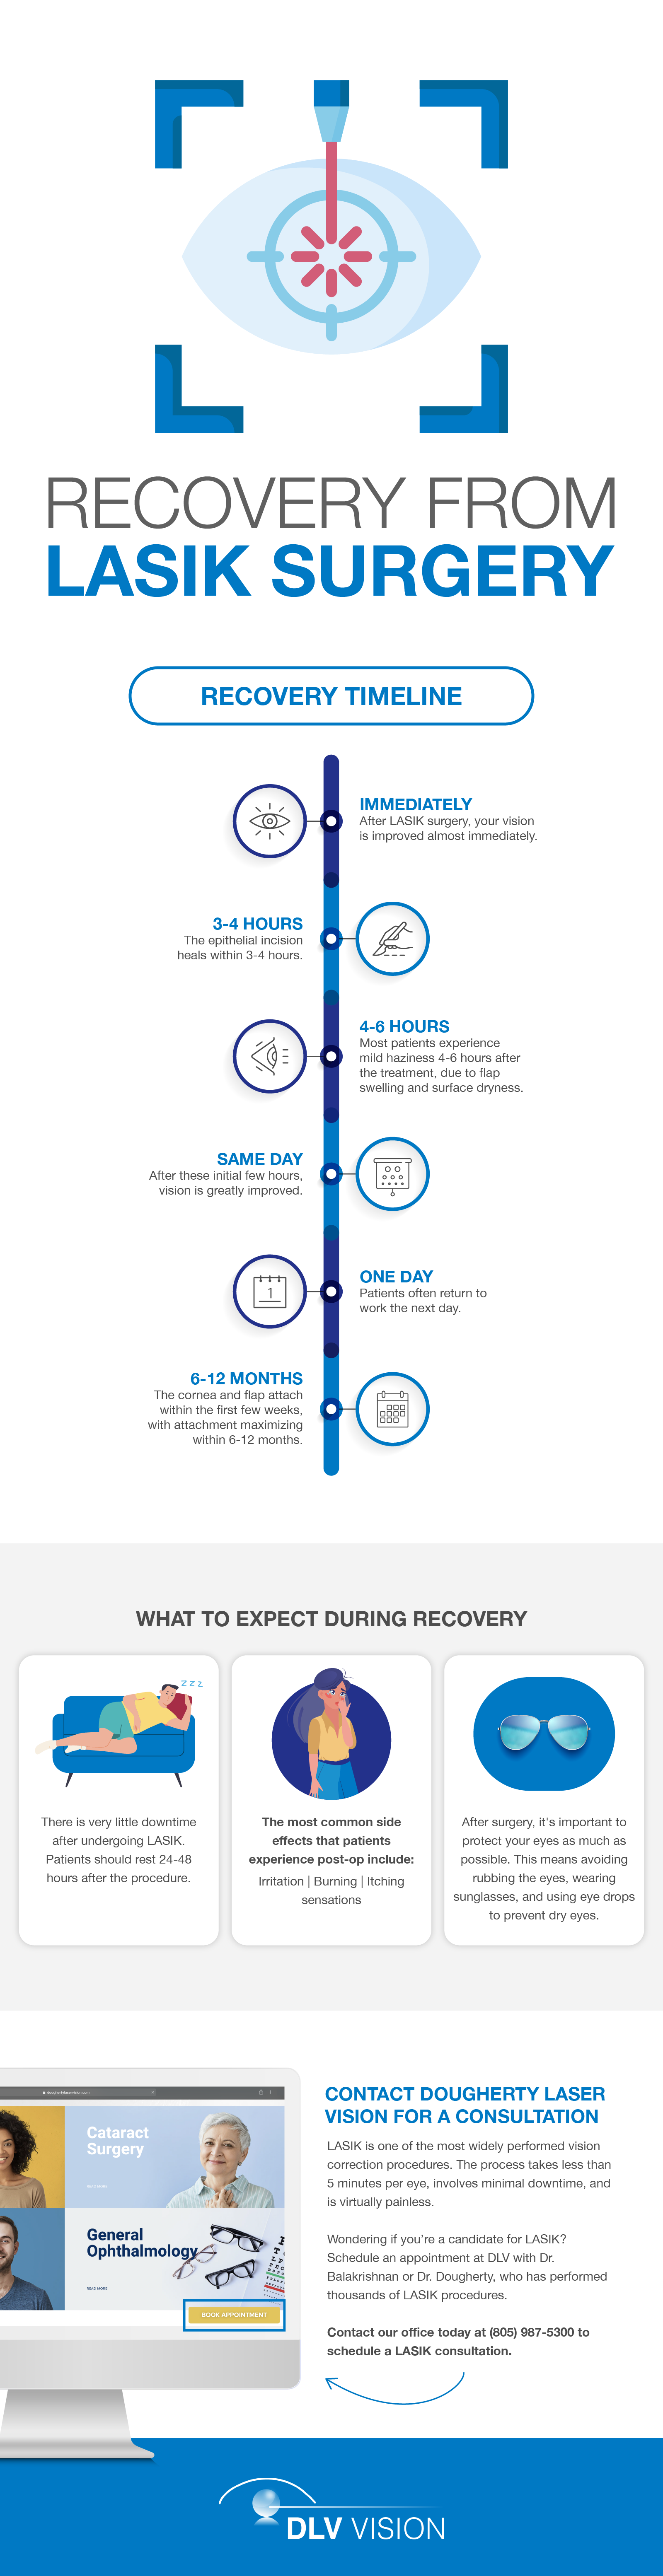 Recovery from LASIK Surgery Infographic